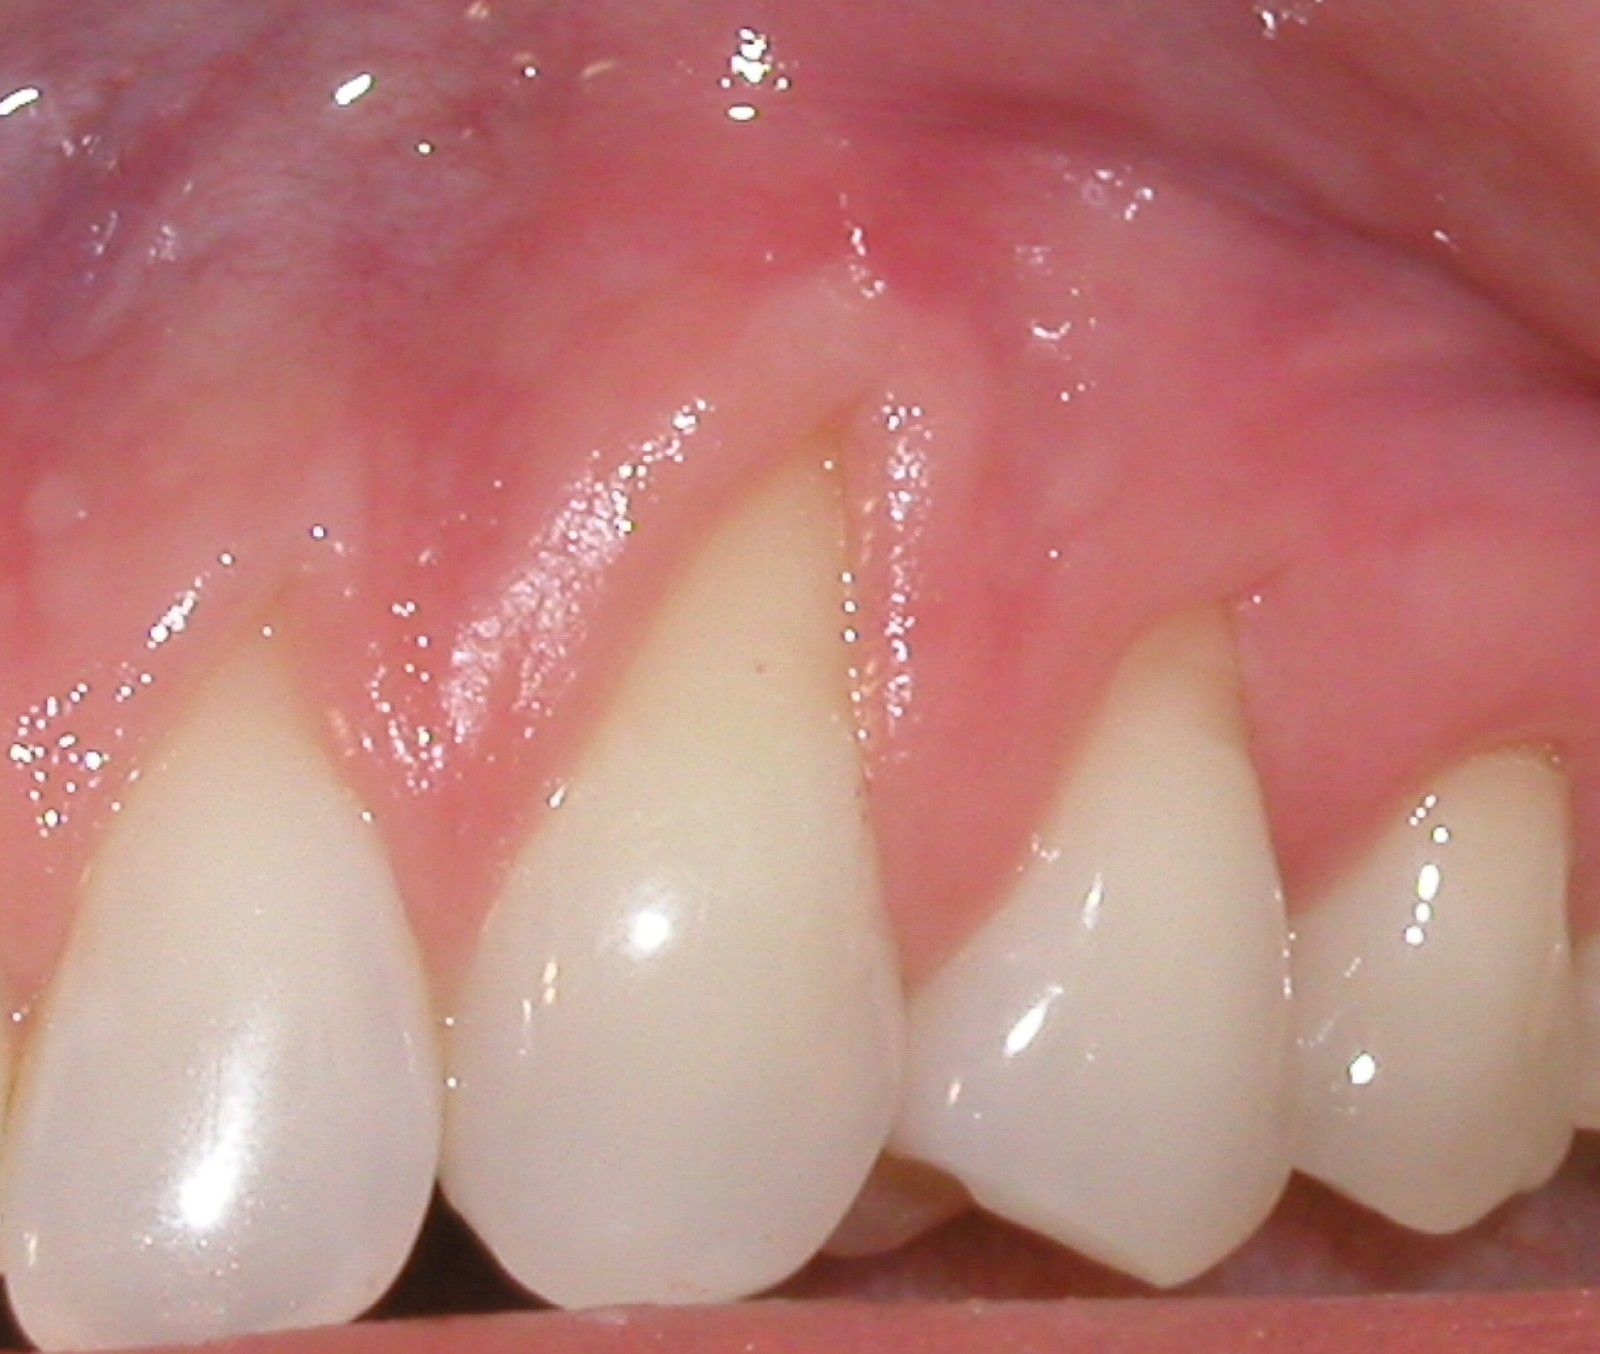 Picture of a mouth that needs a coronal graft